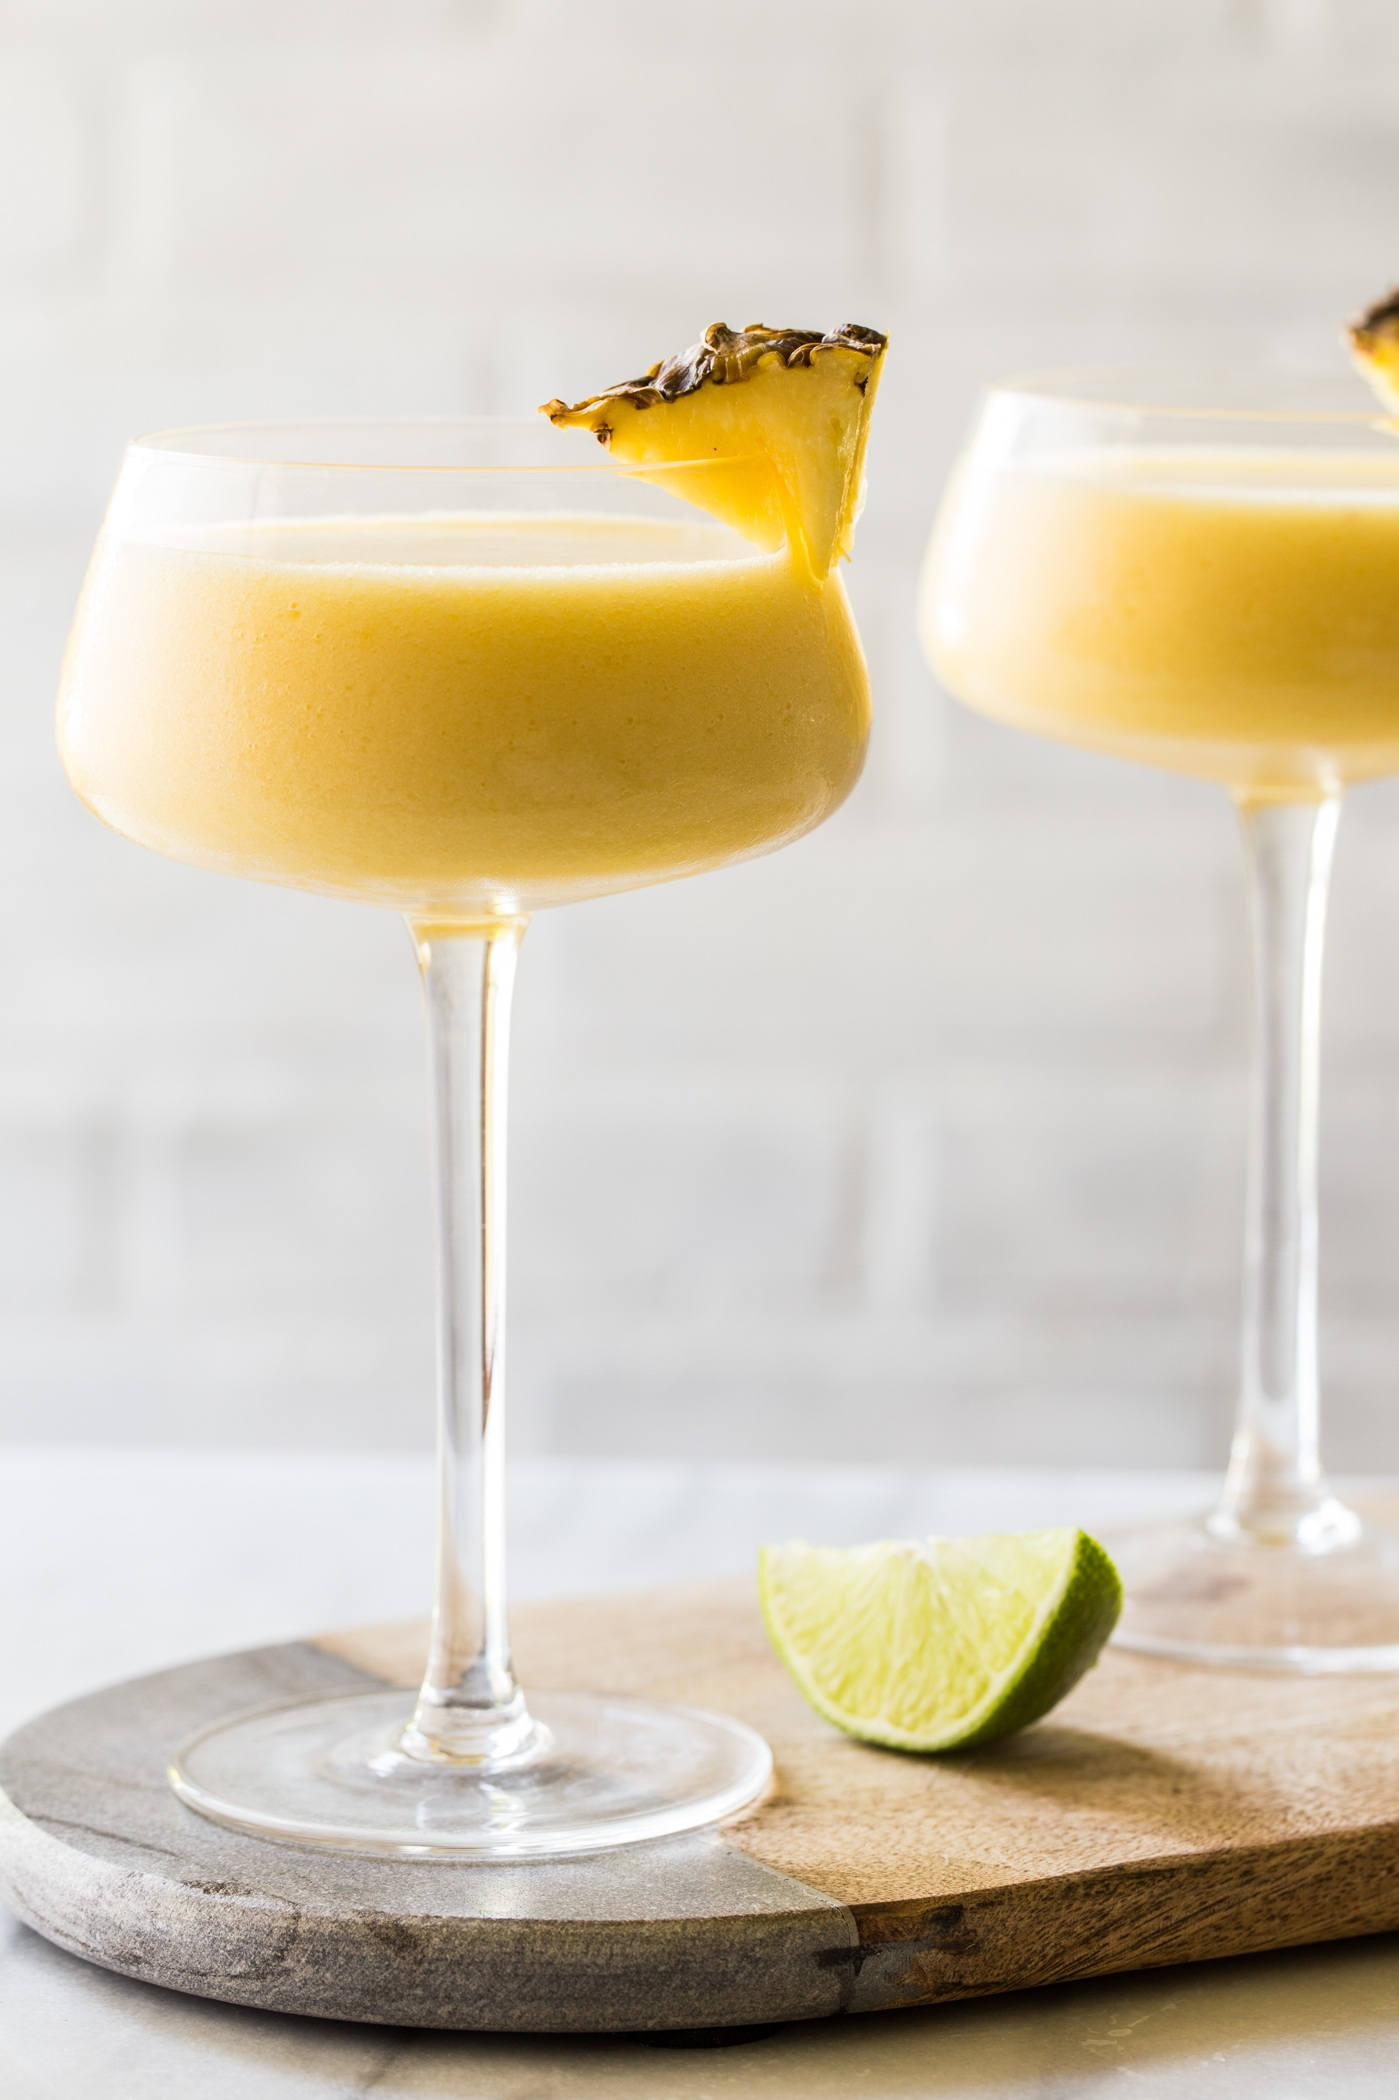 Frozen Pineapple Mango Daquiri from Jelly Toast